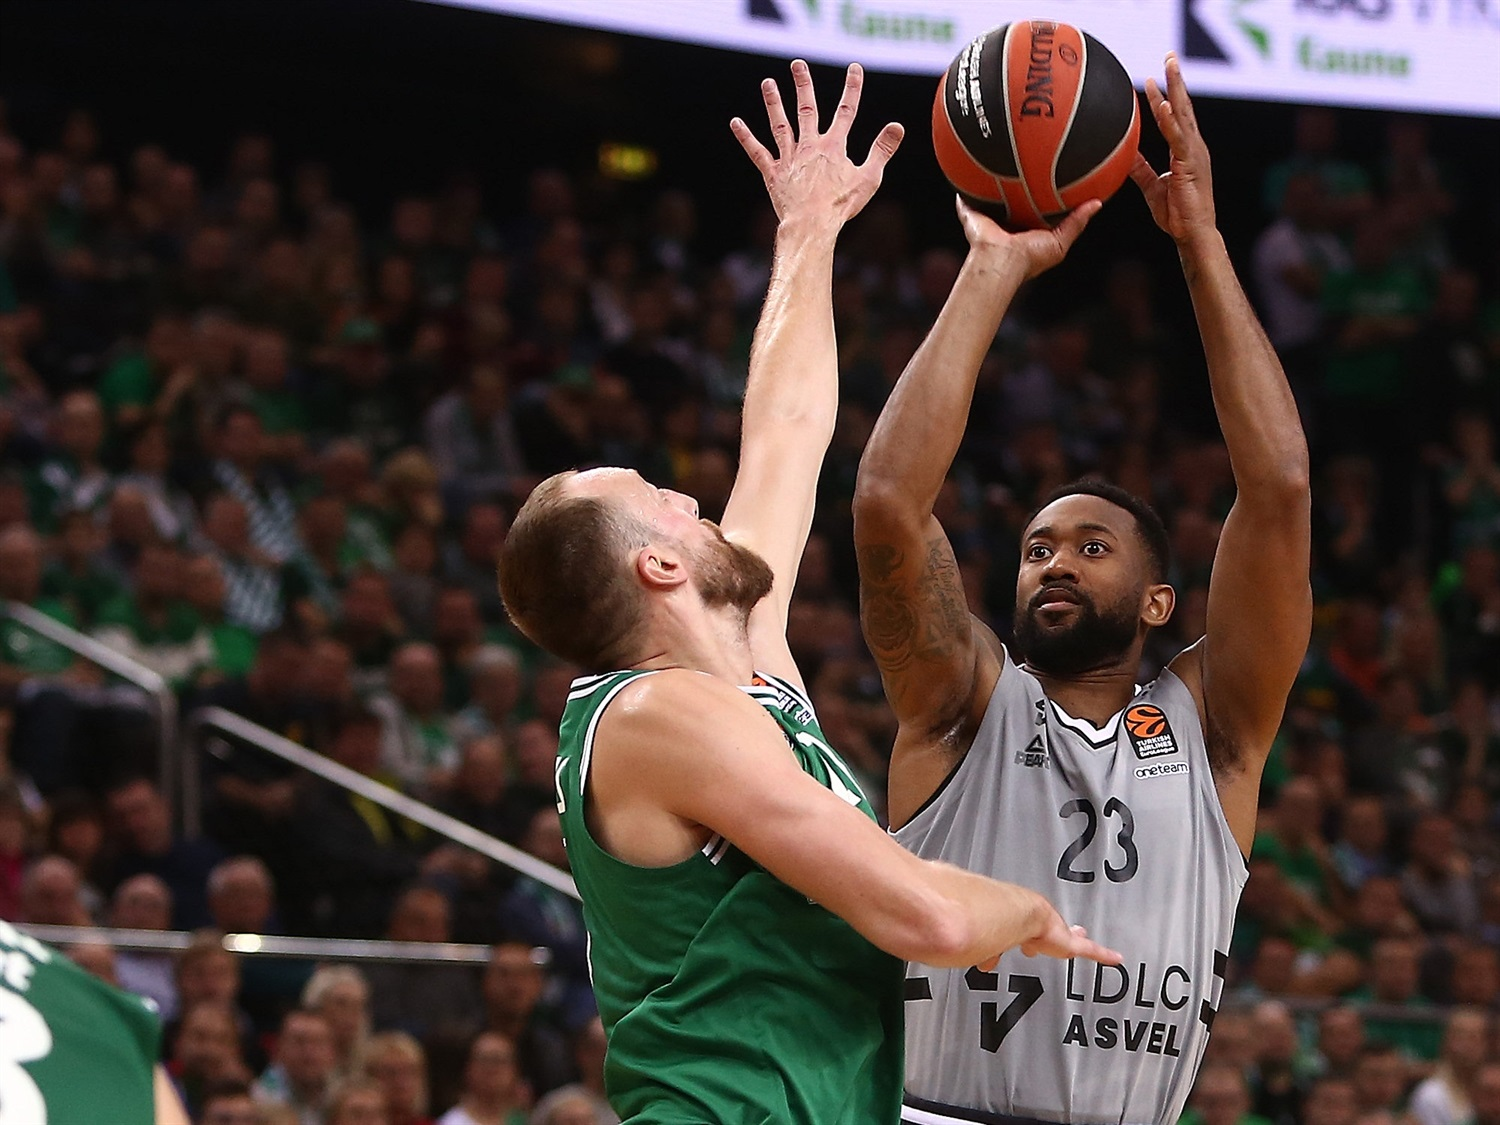 David Lighty - LDLC ASVEL Villeurbanne - EB19